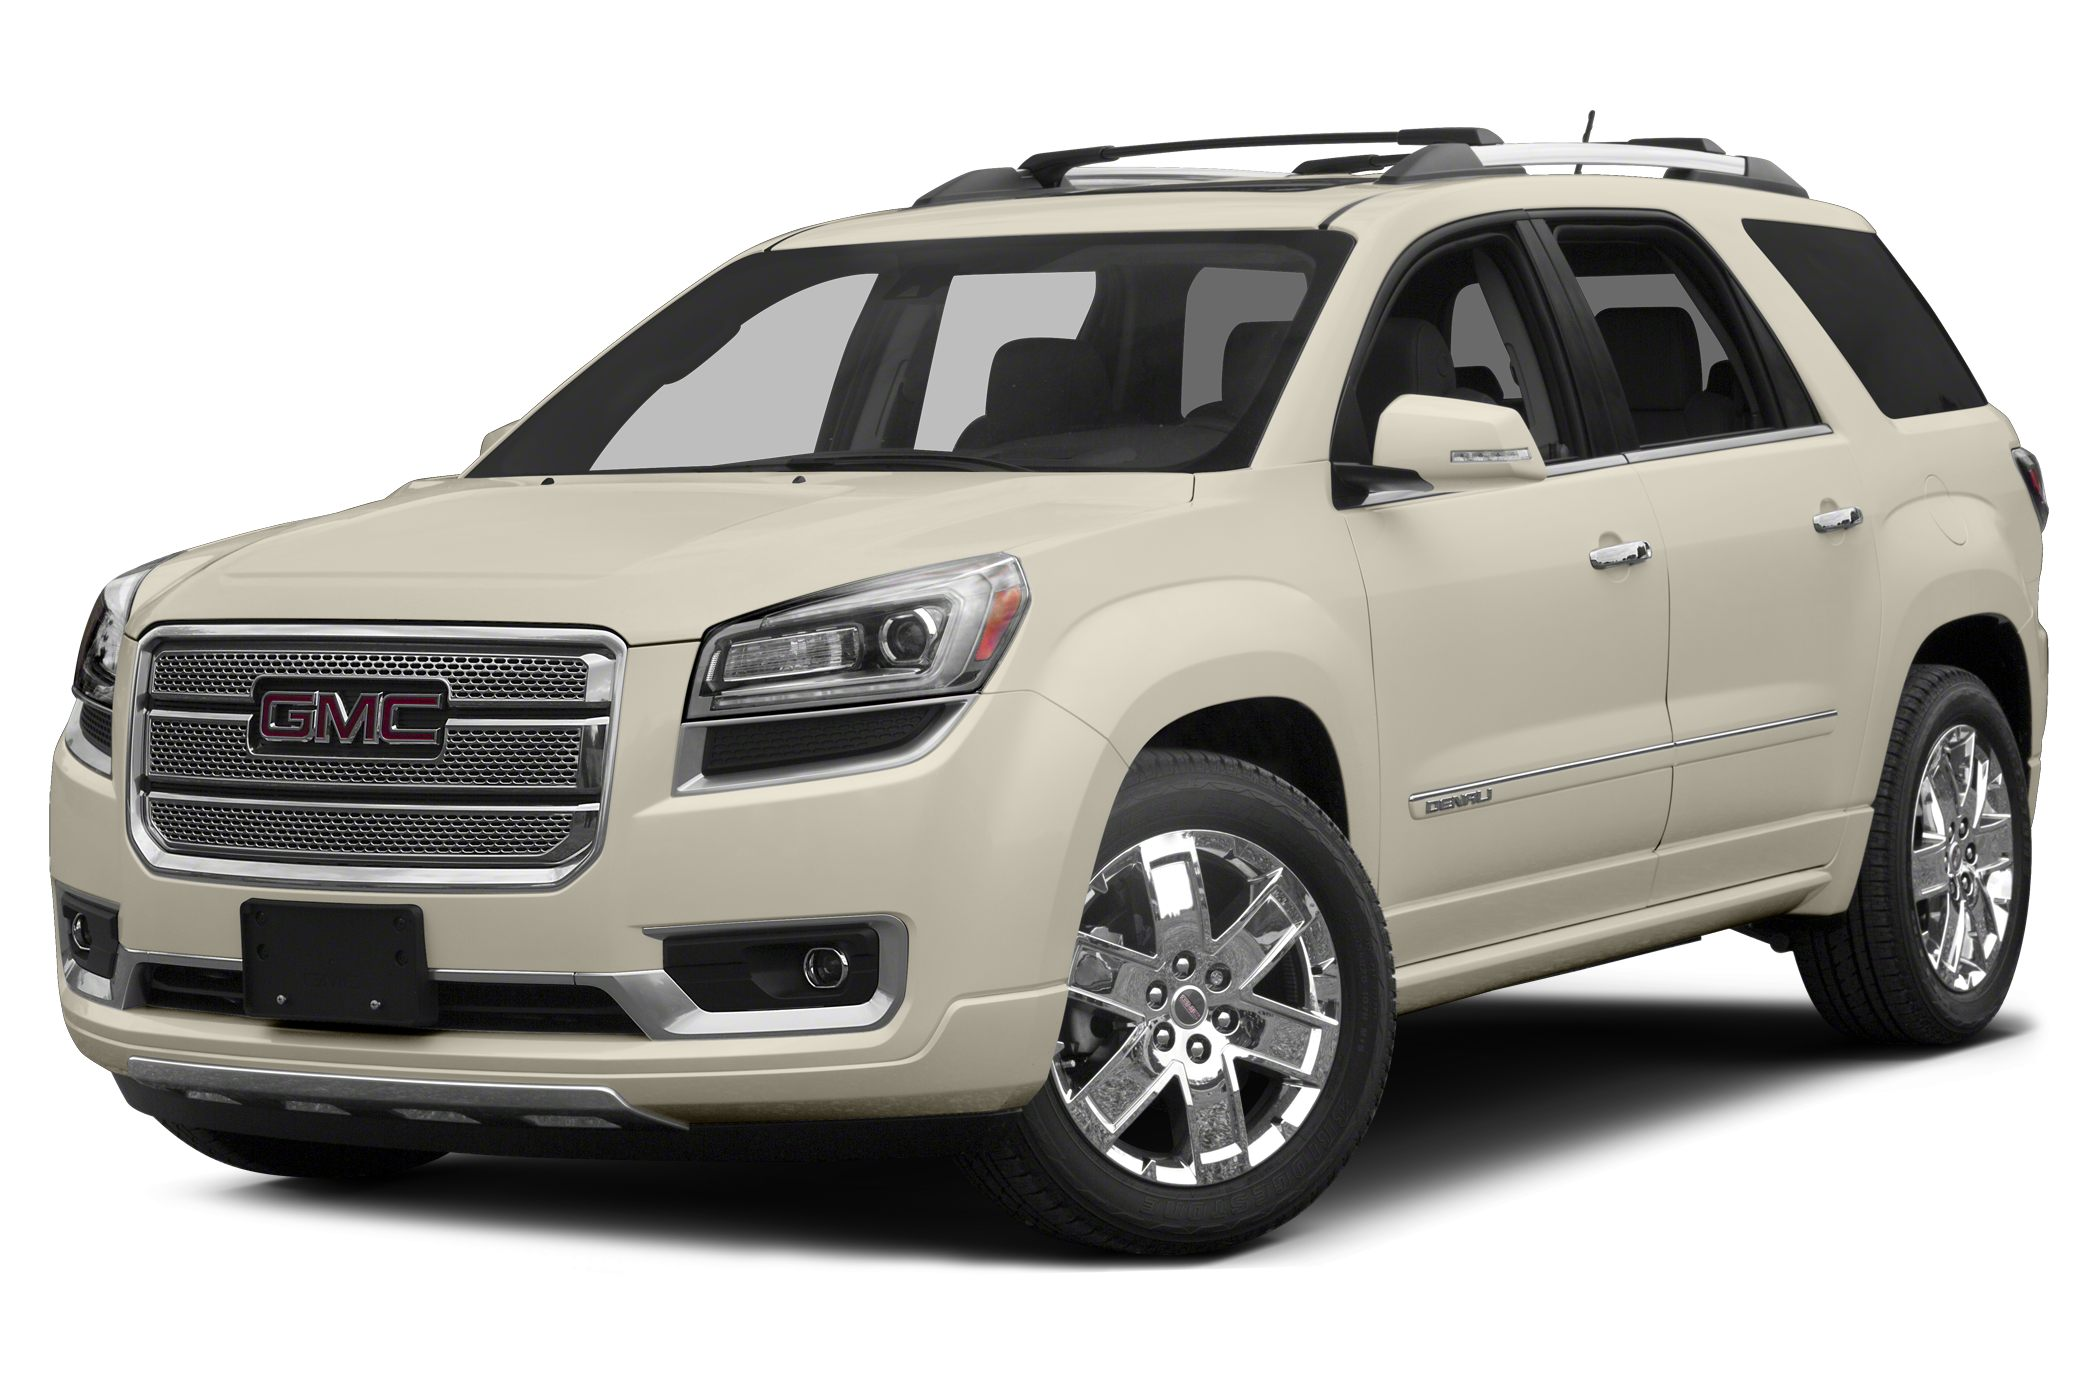 2015 GMC Acadia Denali SUV for sale in Ankeny for $51,710 with 6 miles